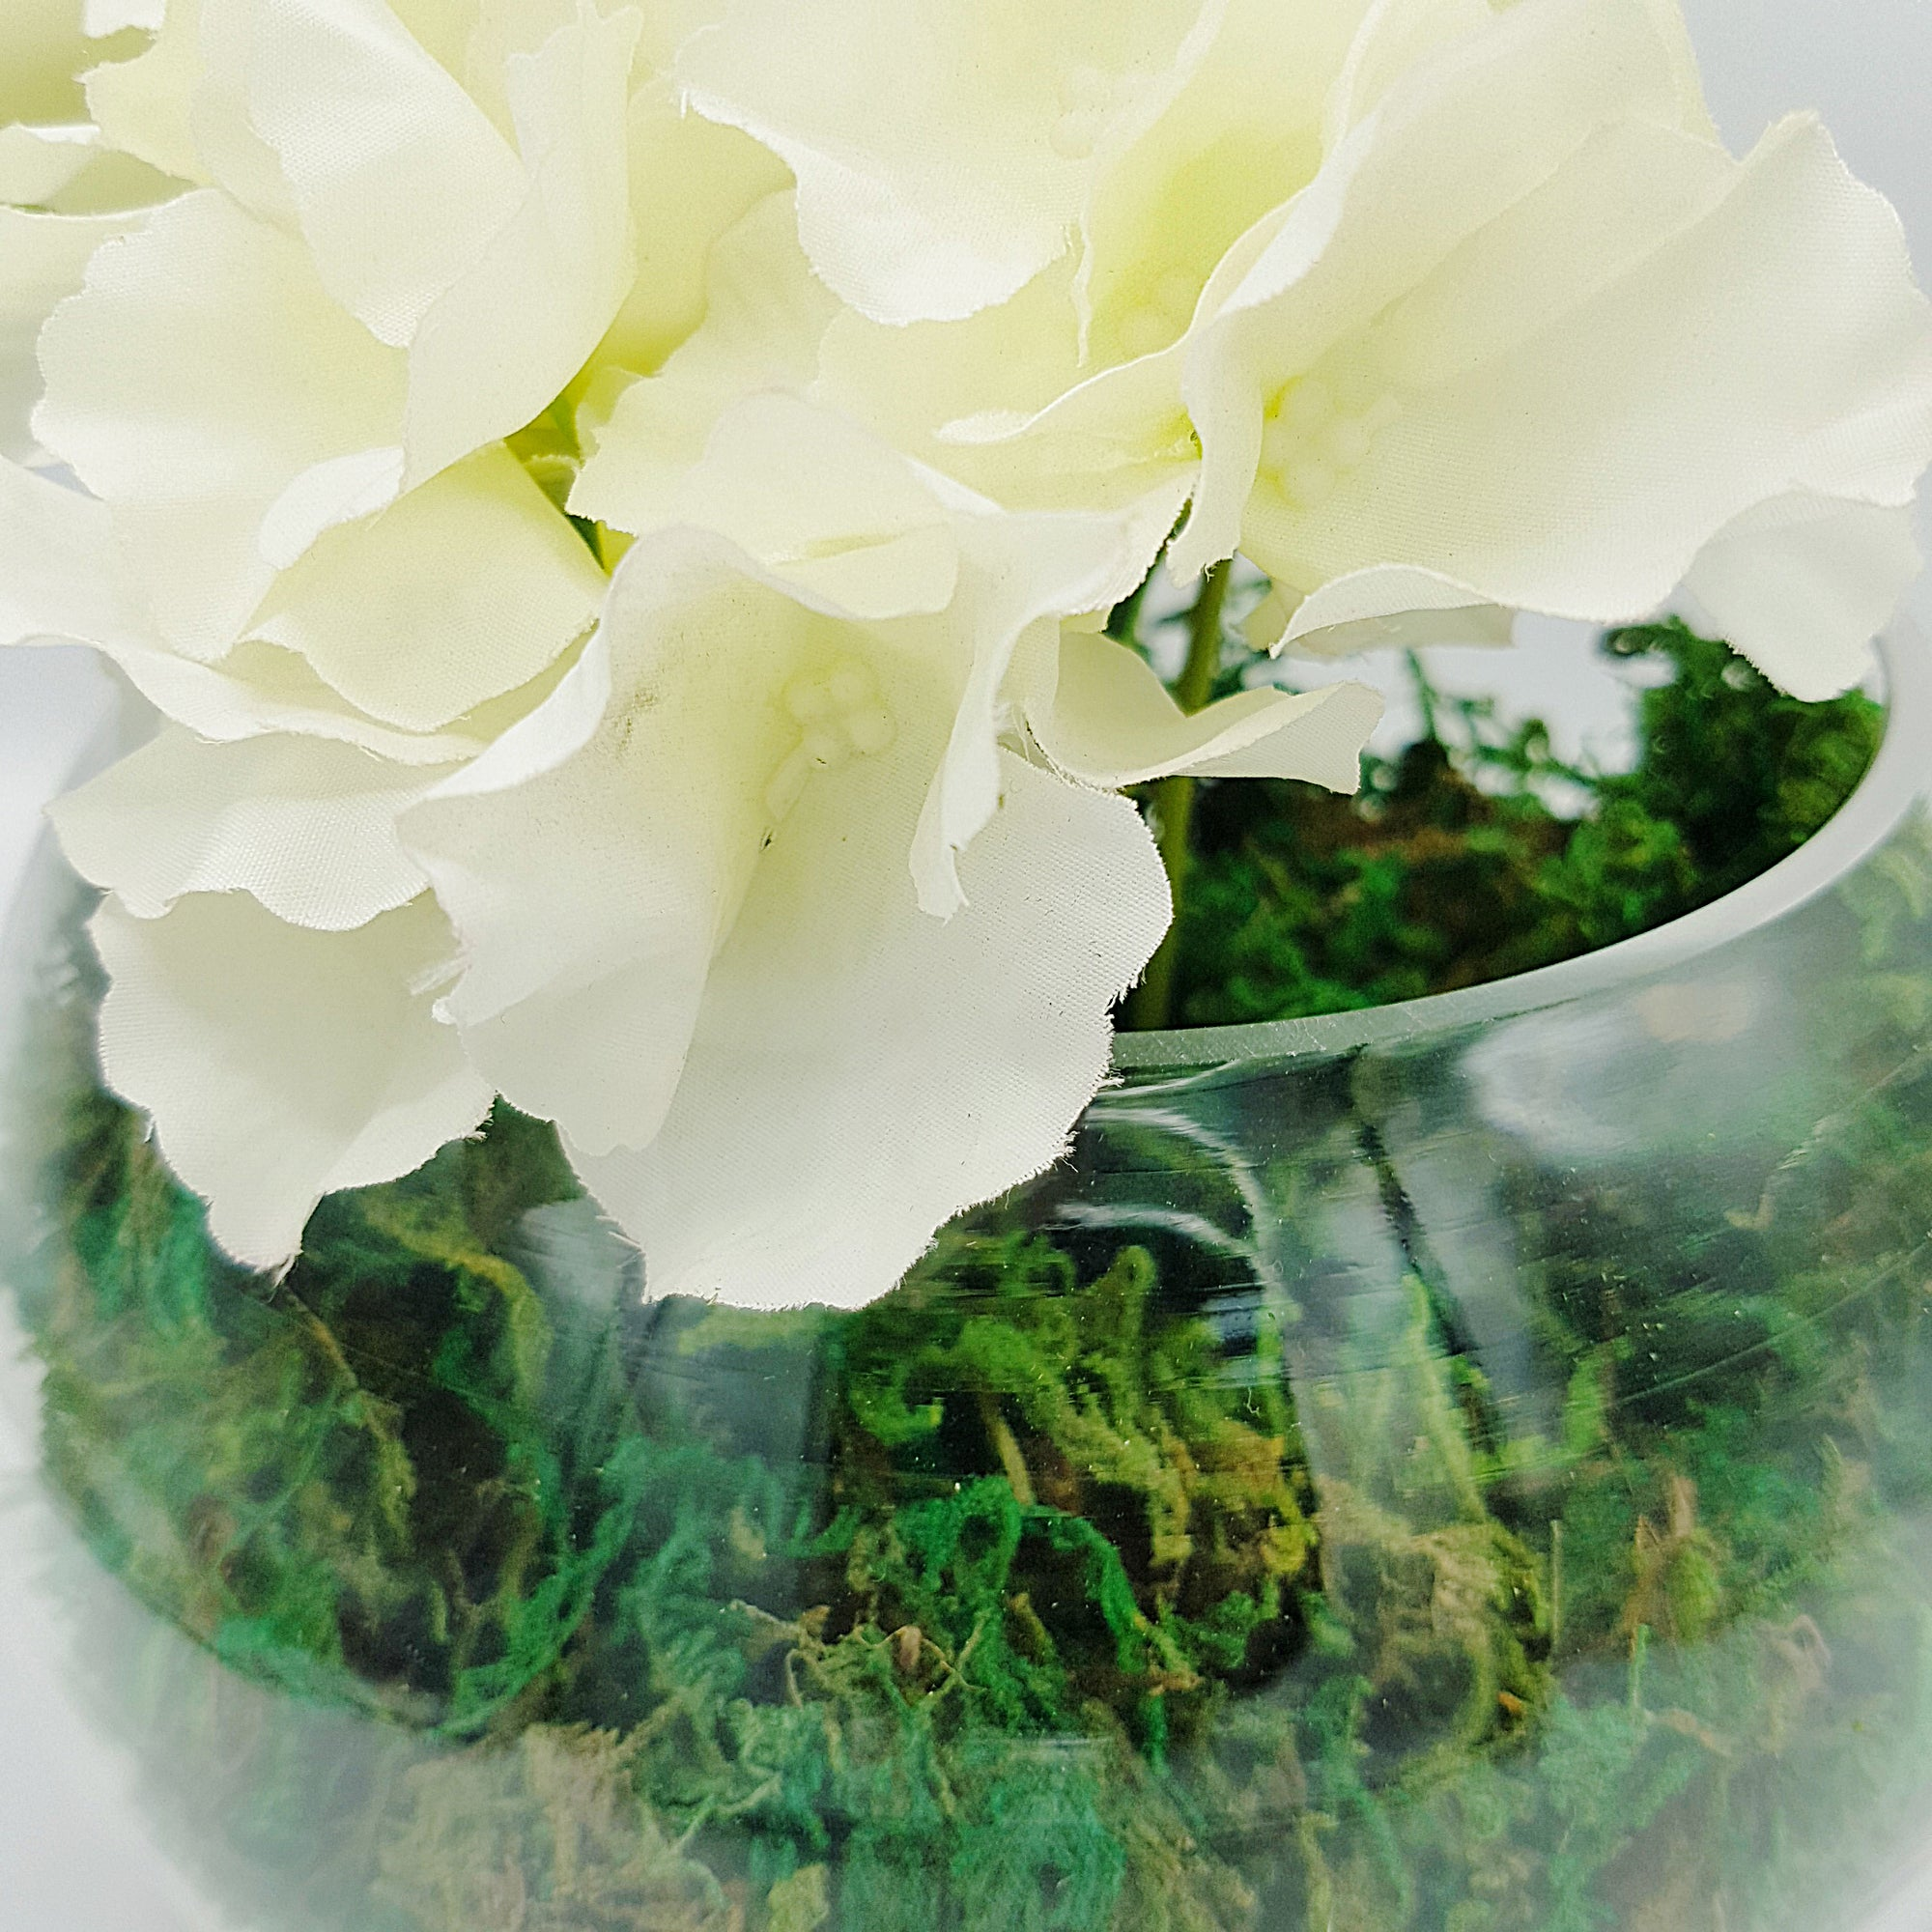 White Flower & Moss Arrangement in Round Glass Vase